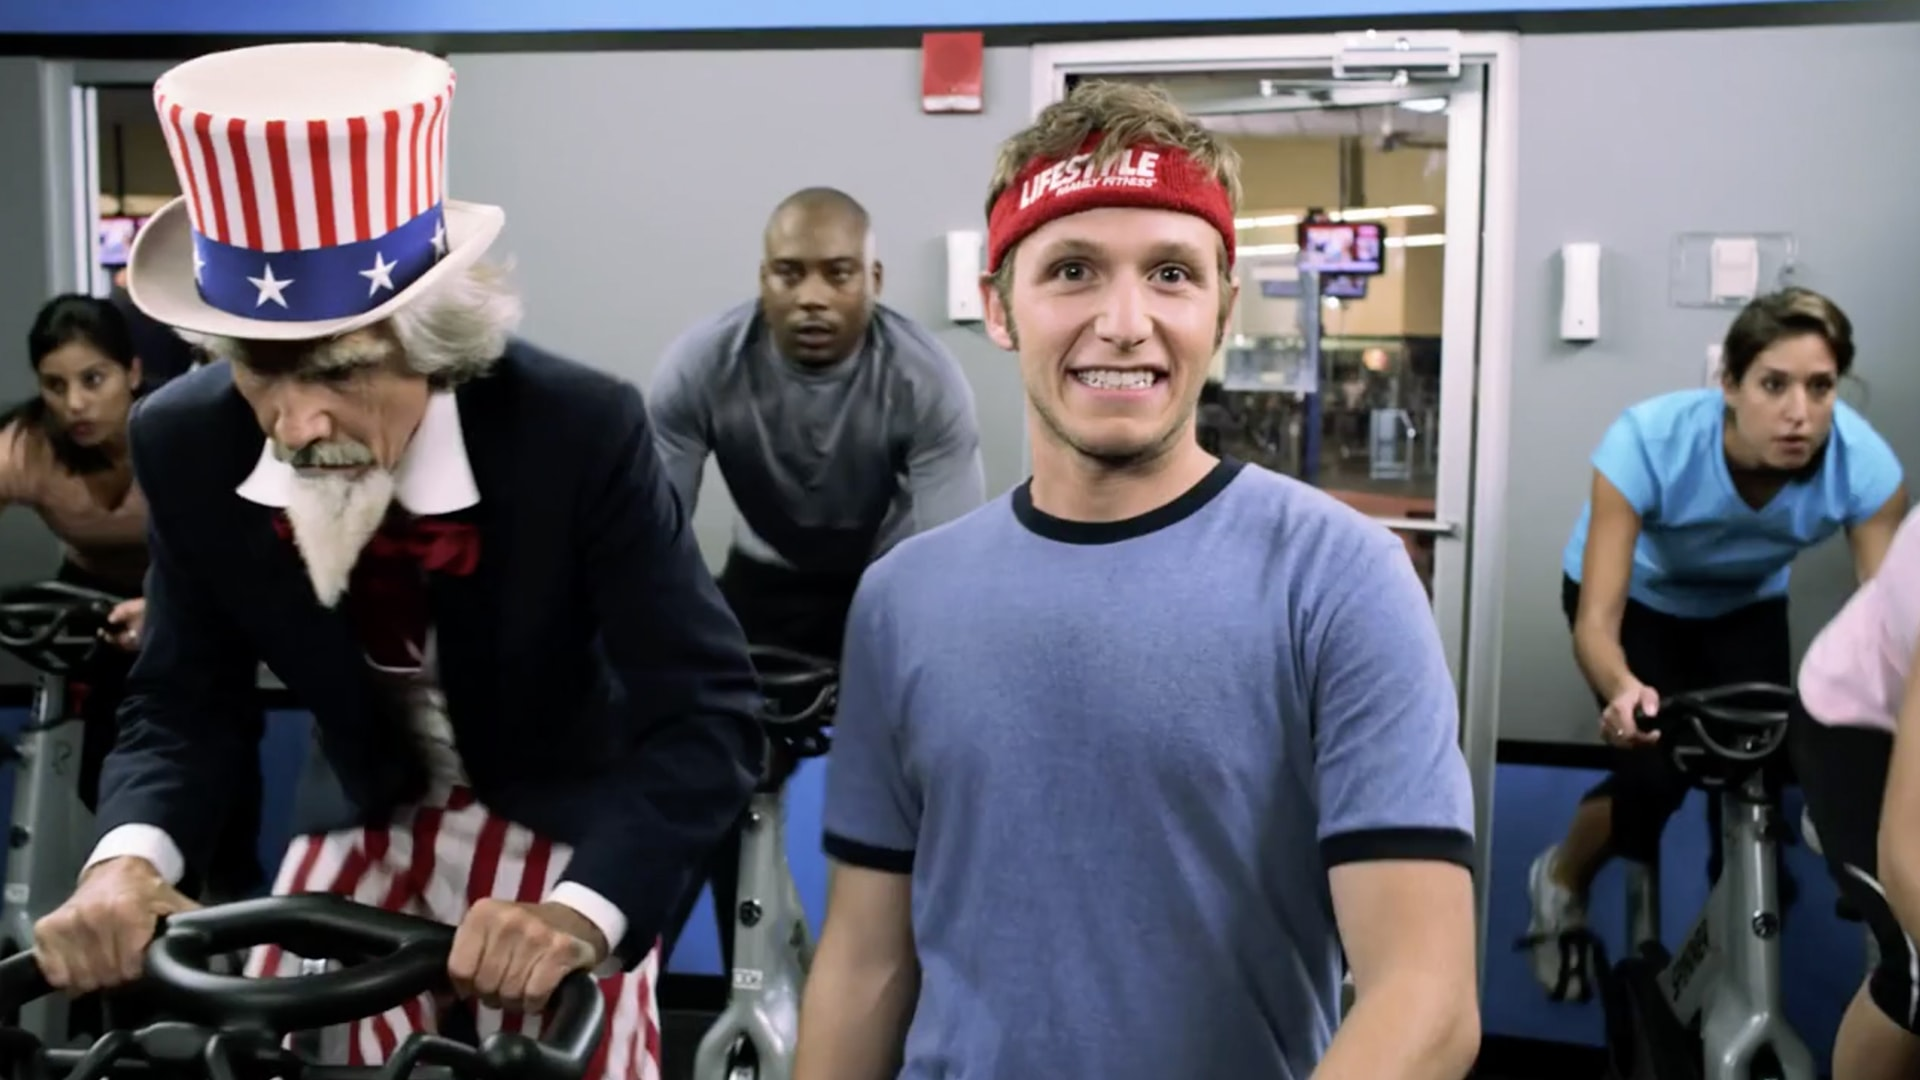 A man at the gym attending a cycling class next to someone dressed up as Uncle Sam.